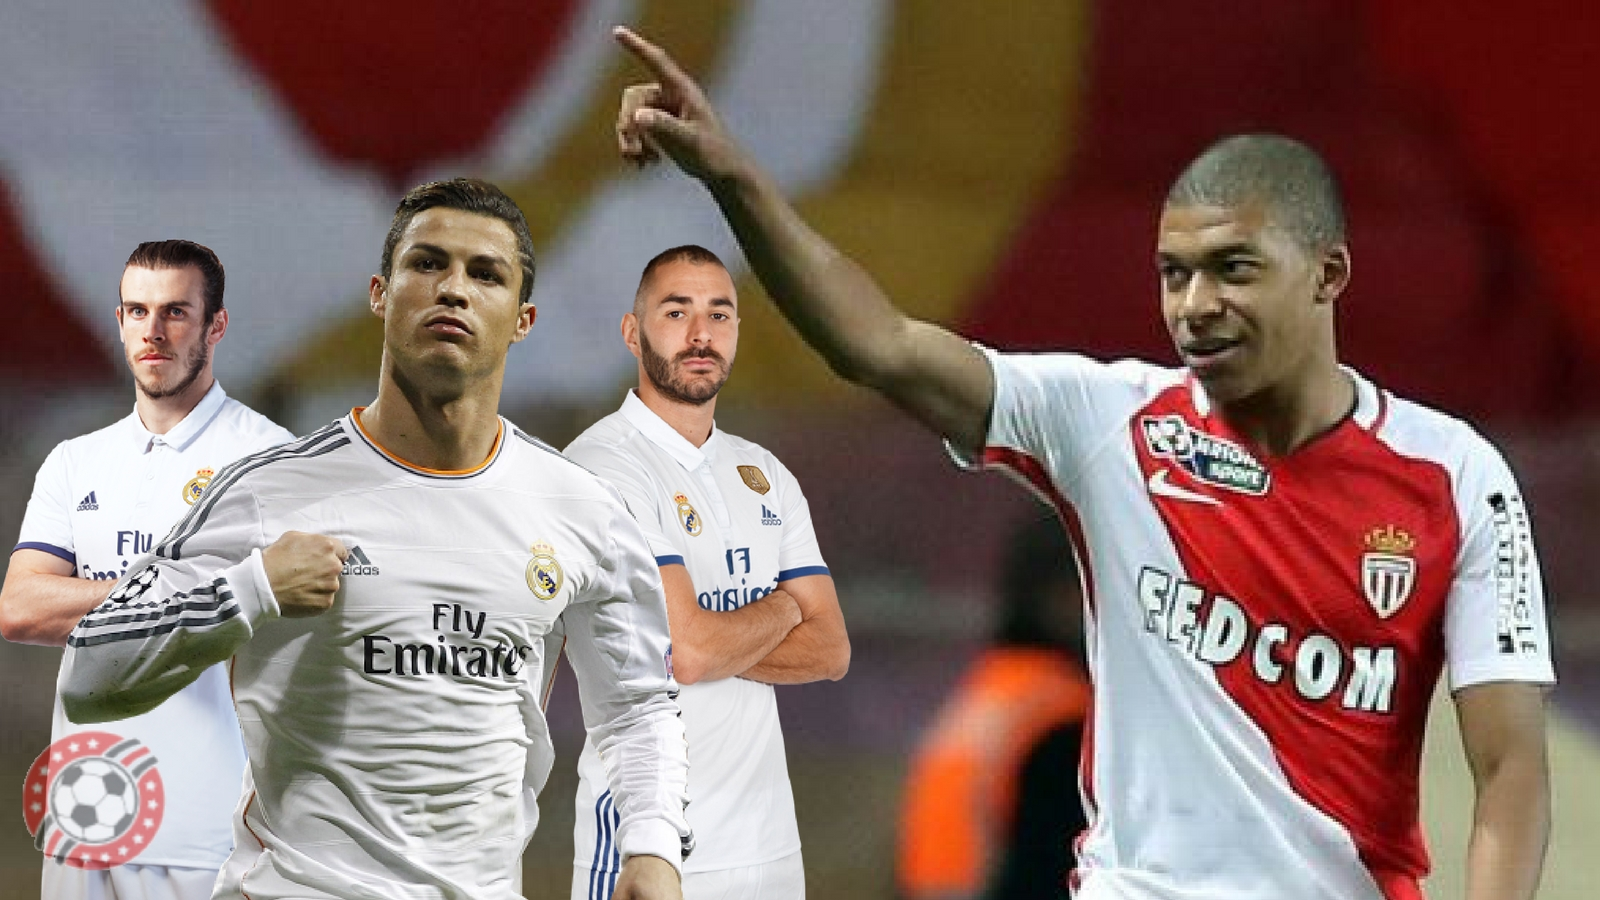 Mbaappe Goles Mágicos